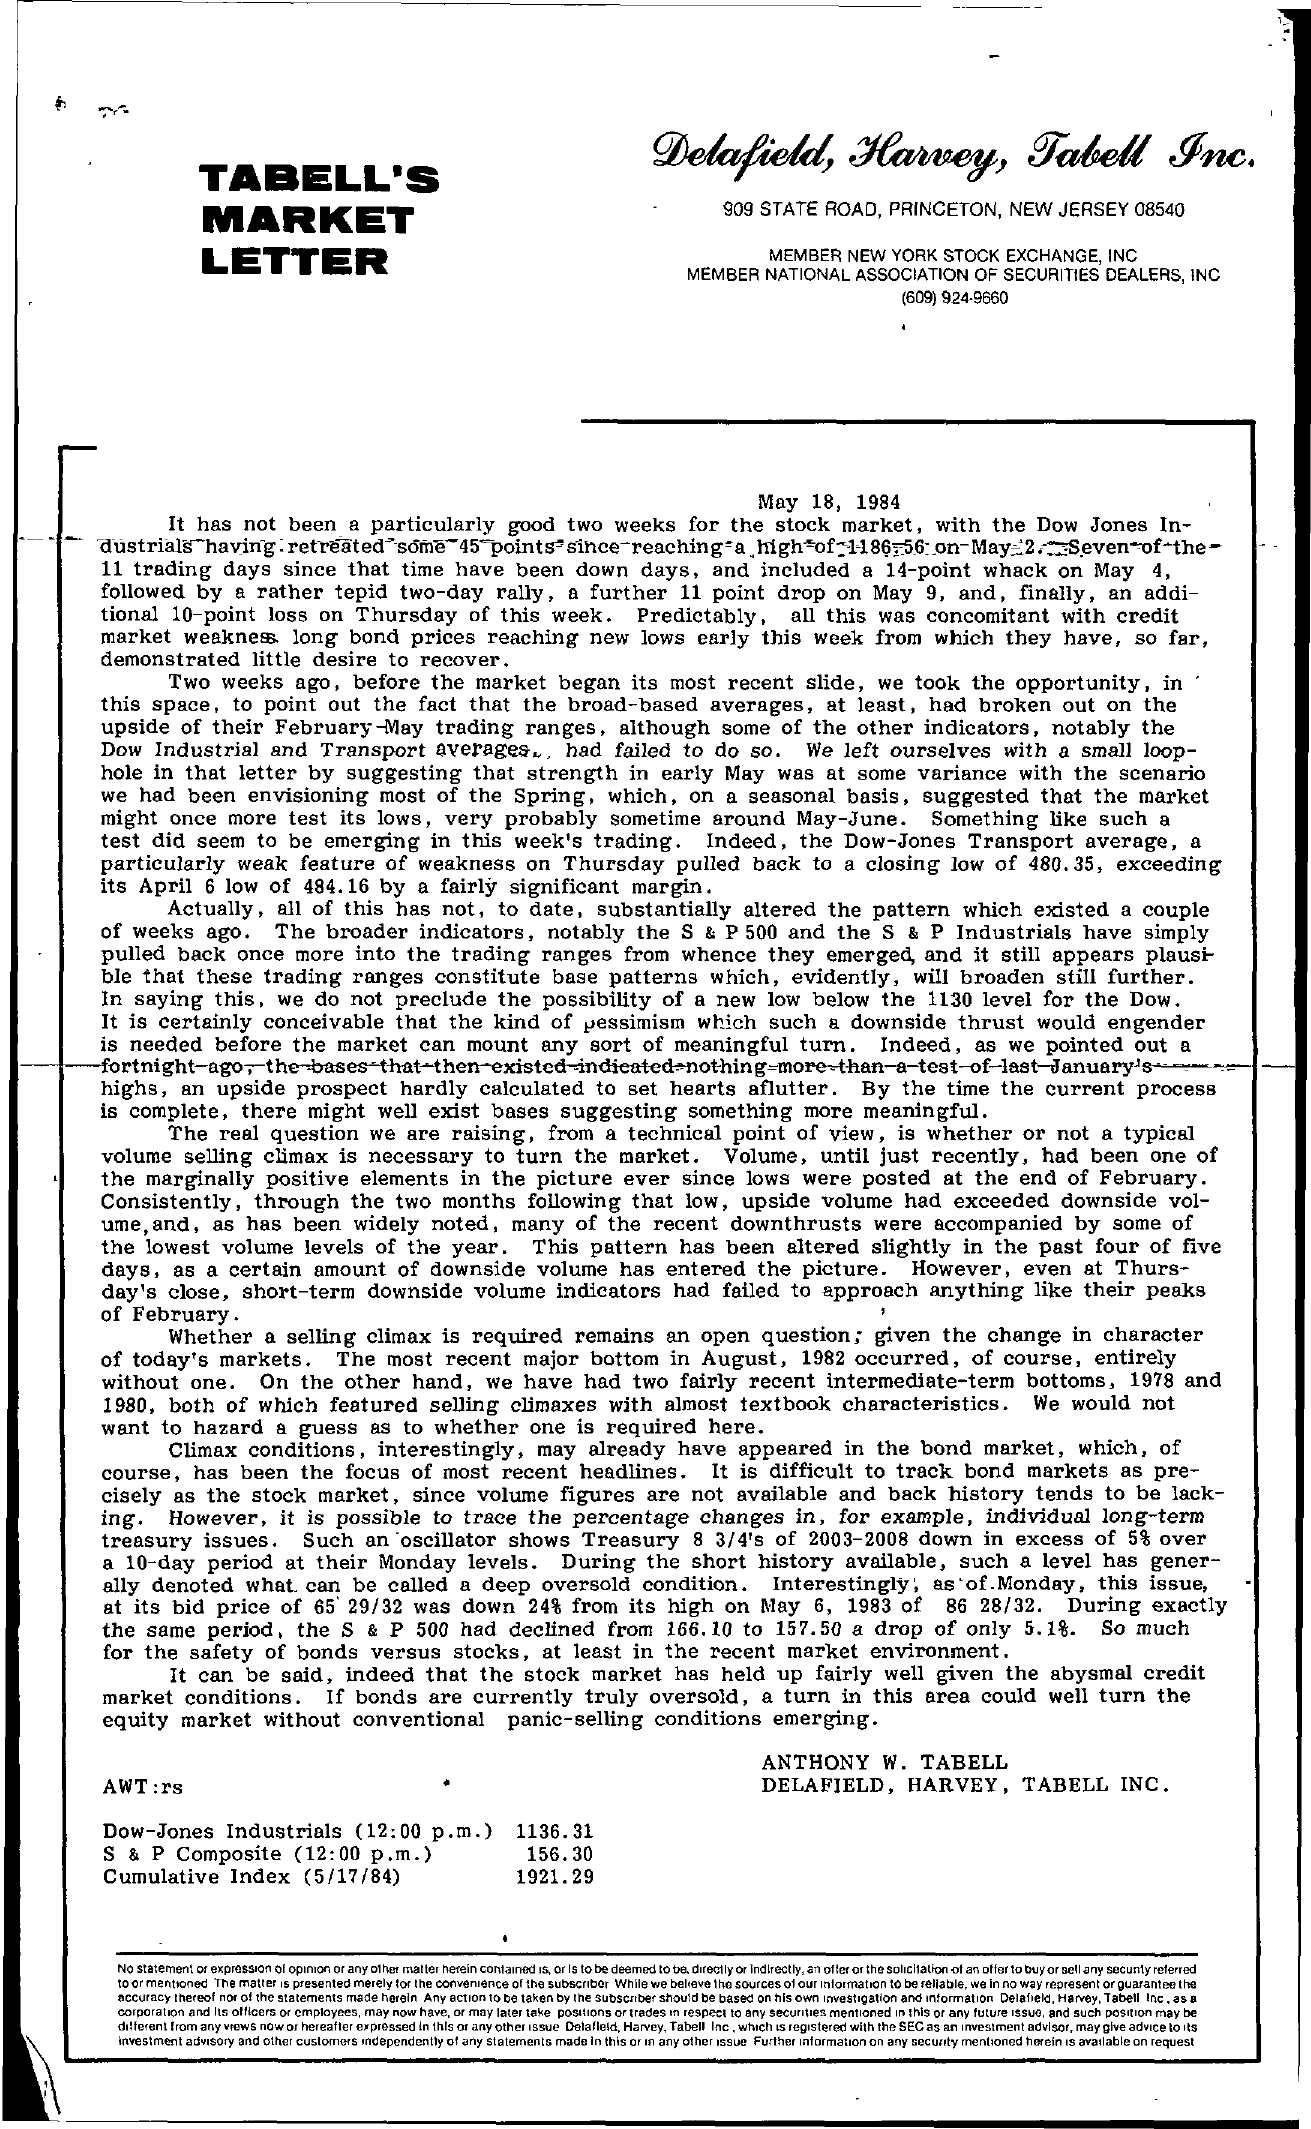 Tabell's Market Letter - May 18, 1984